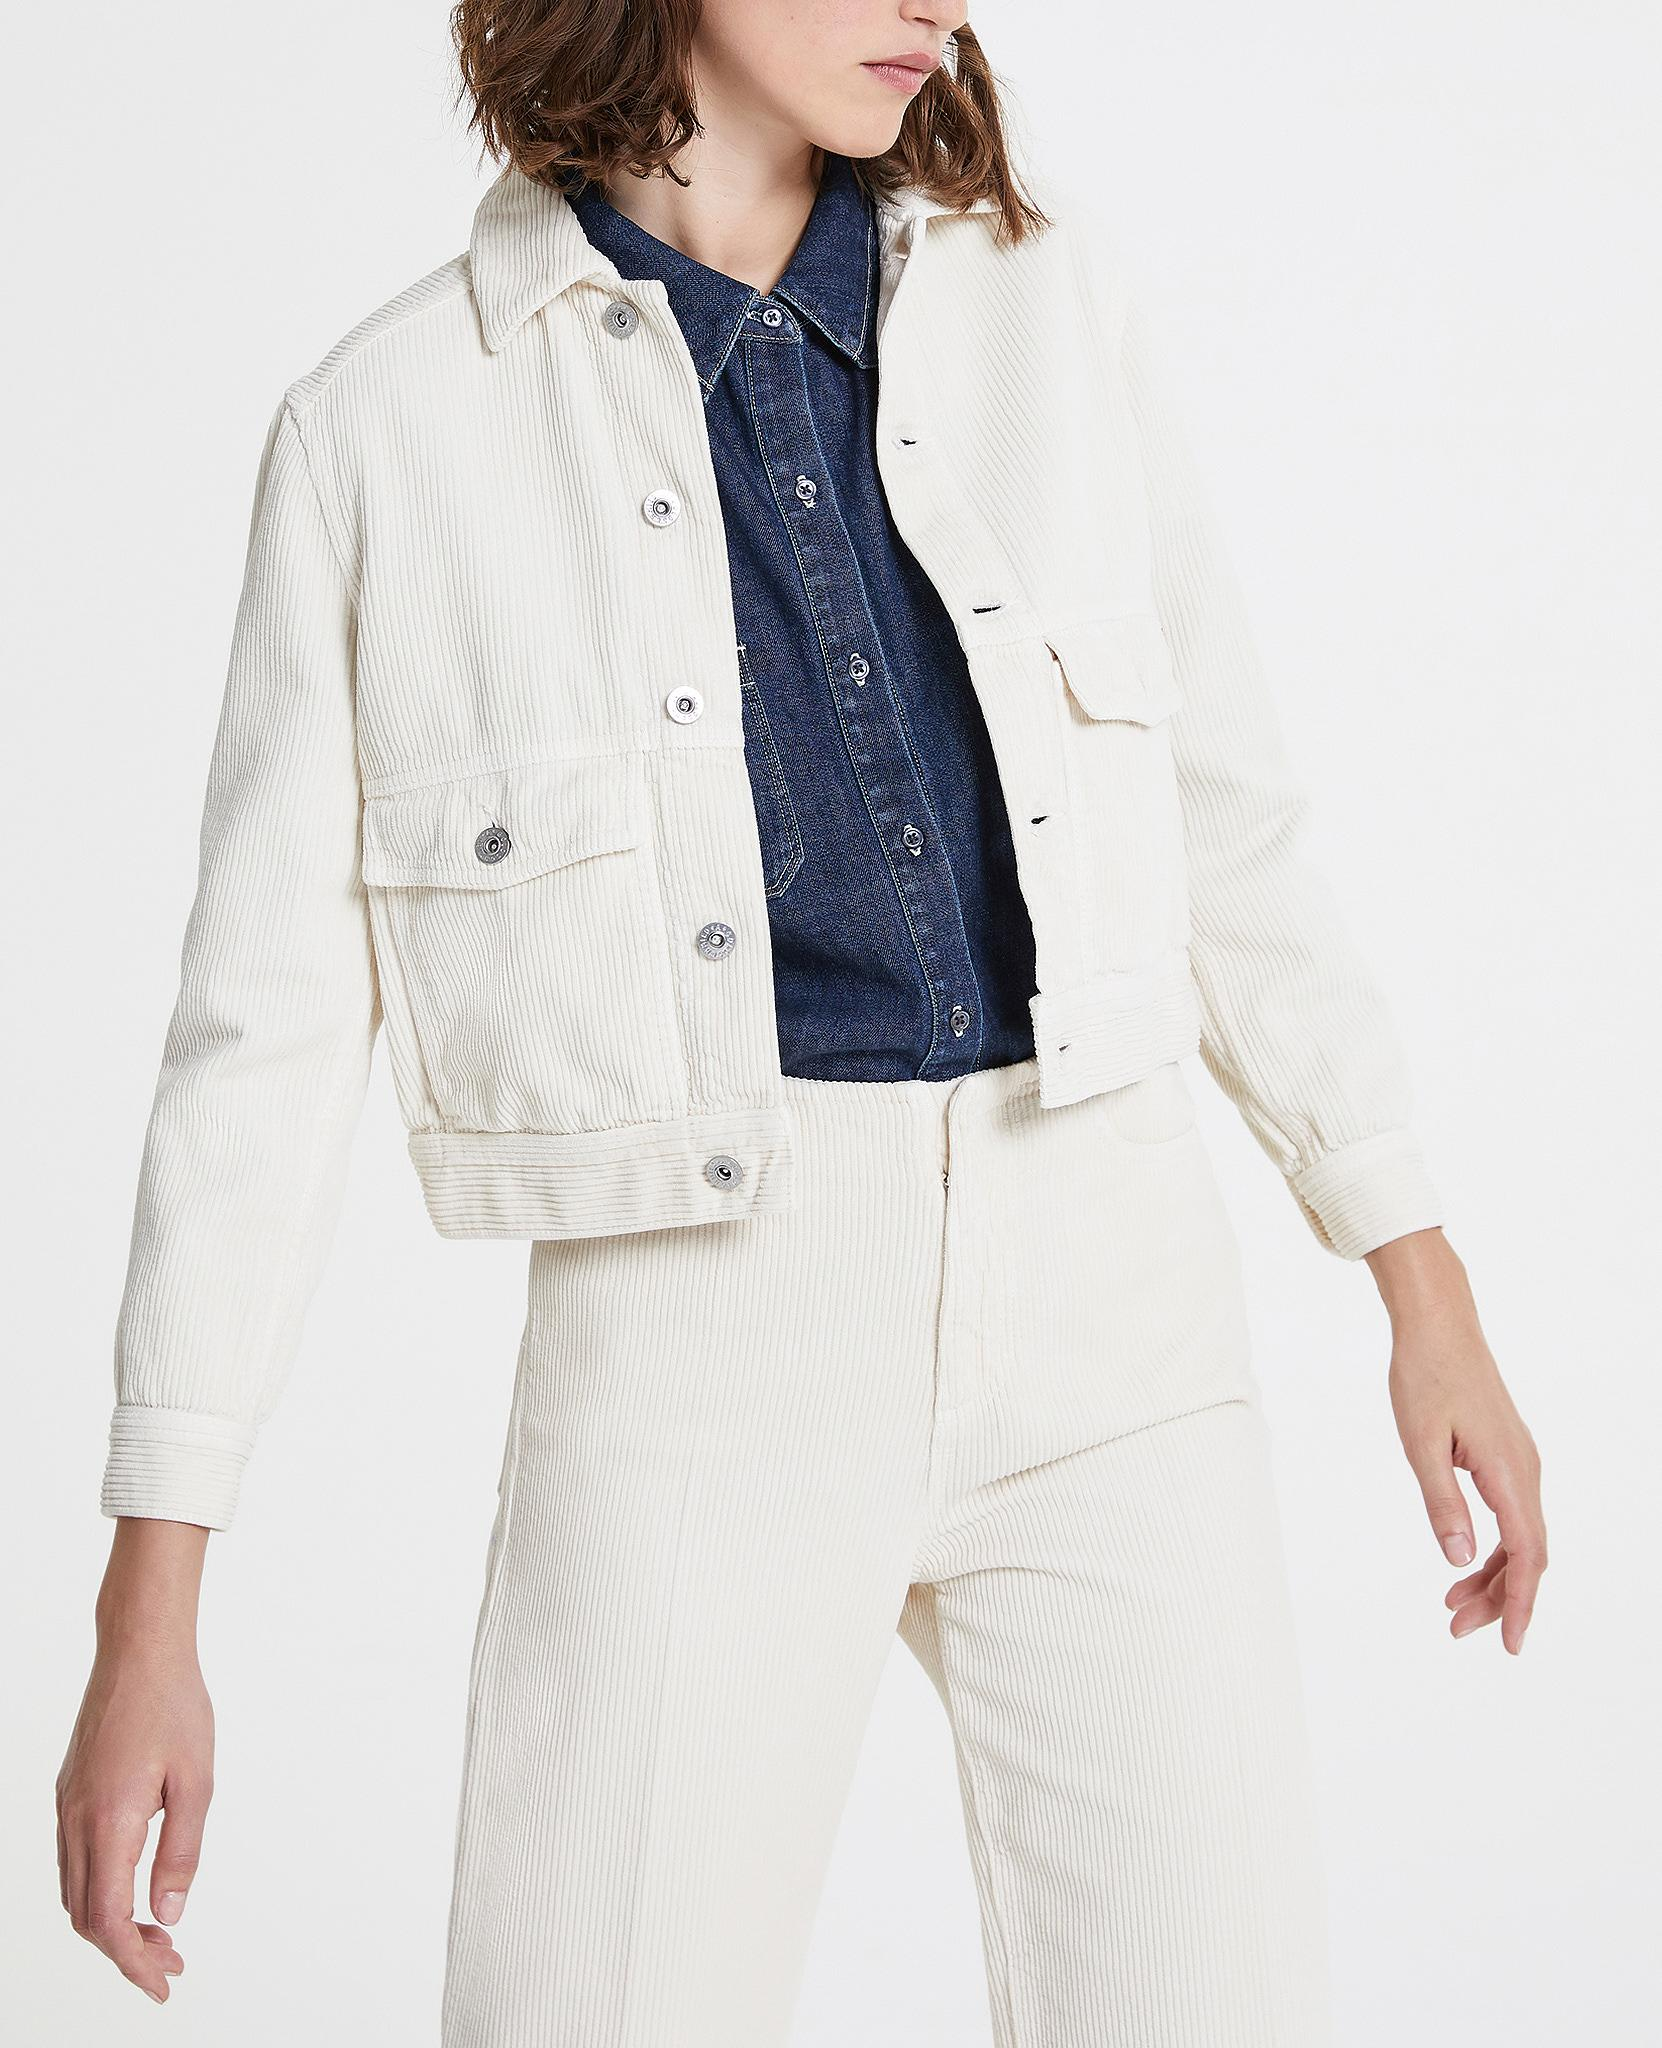 325461c8ba The Evonne Workwear Cropped Jacket in Ivory Dust AG Jeans Official Store